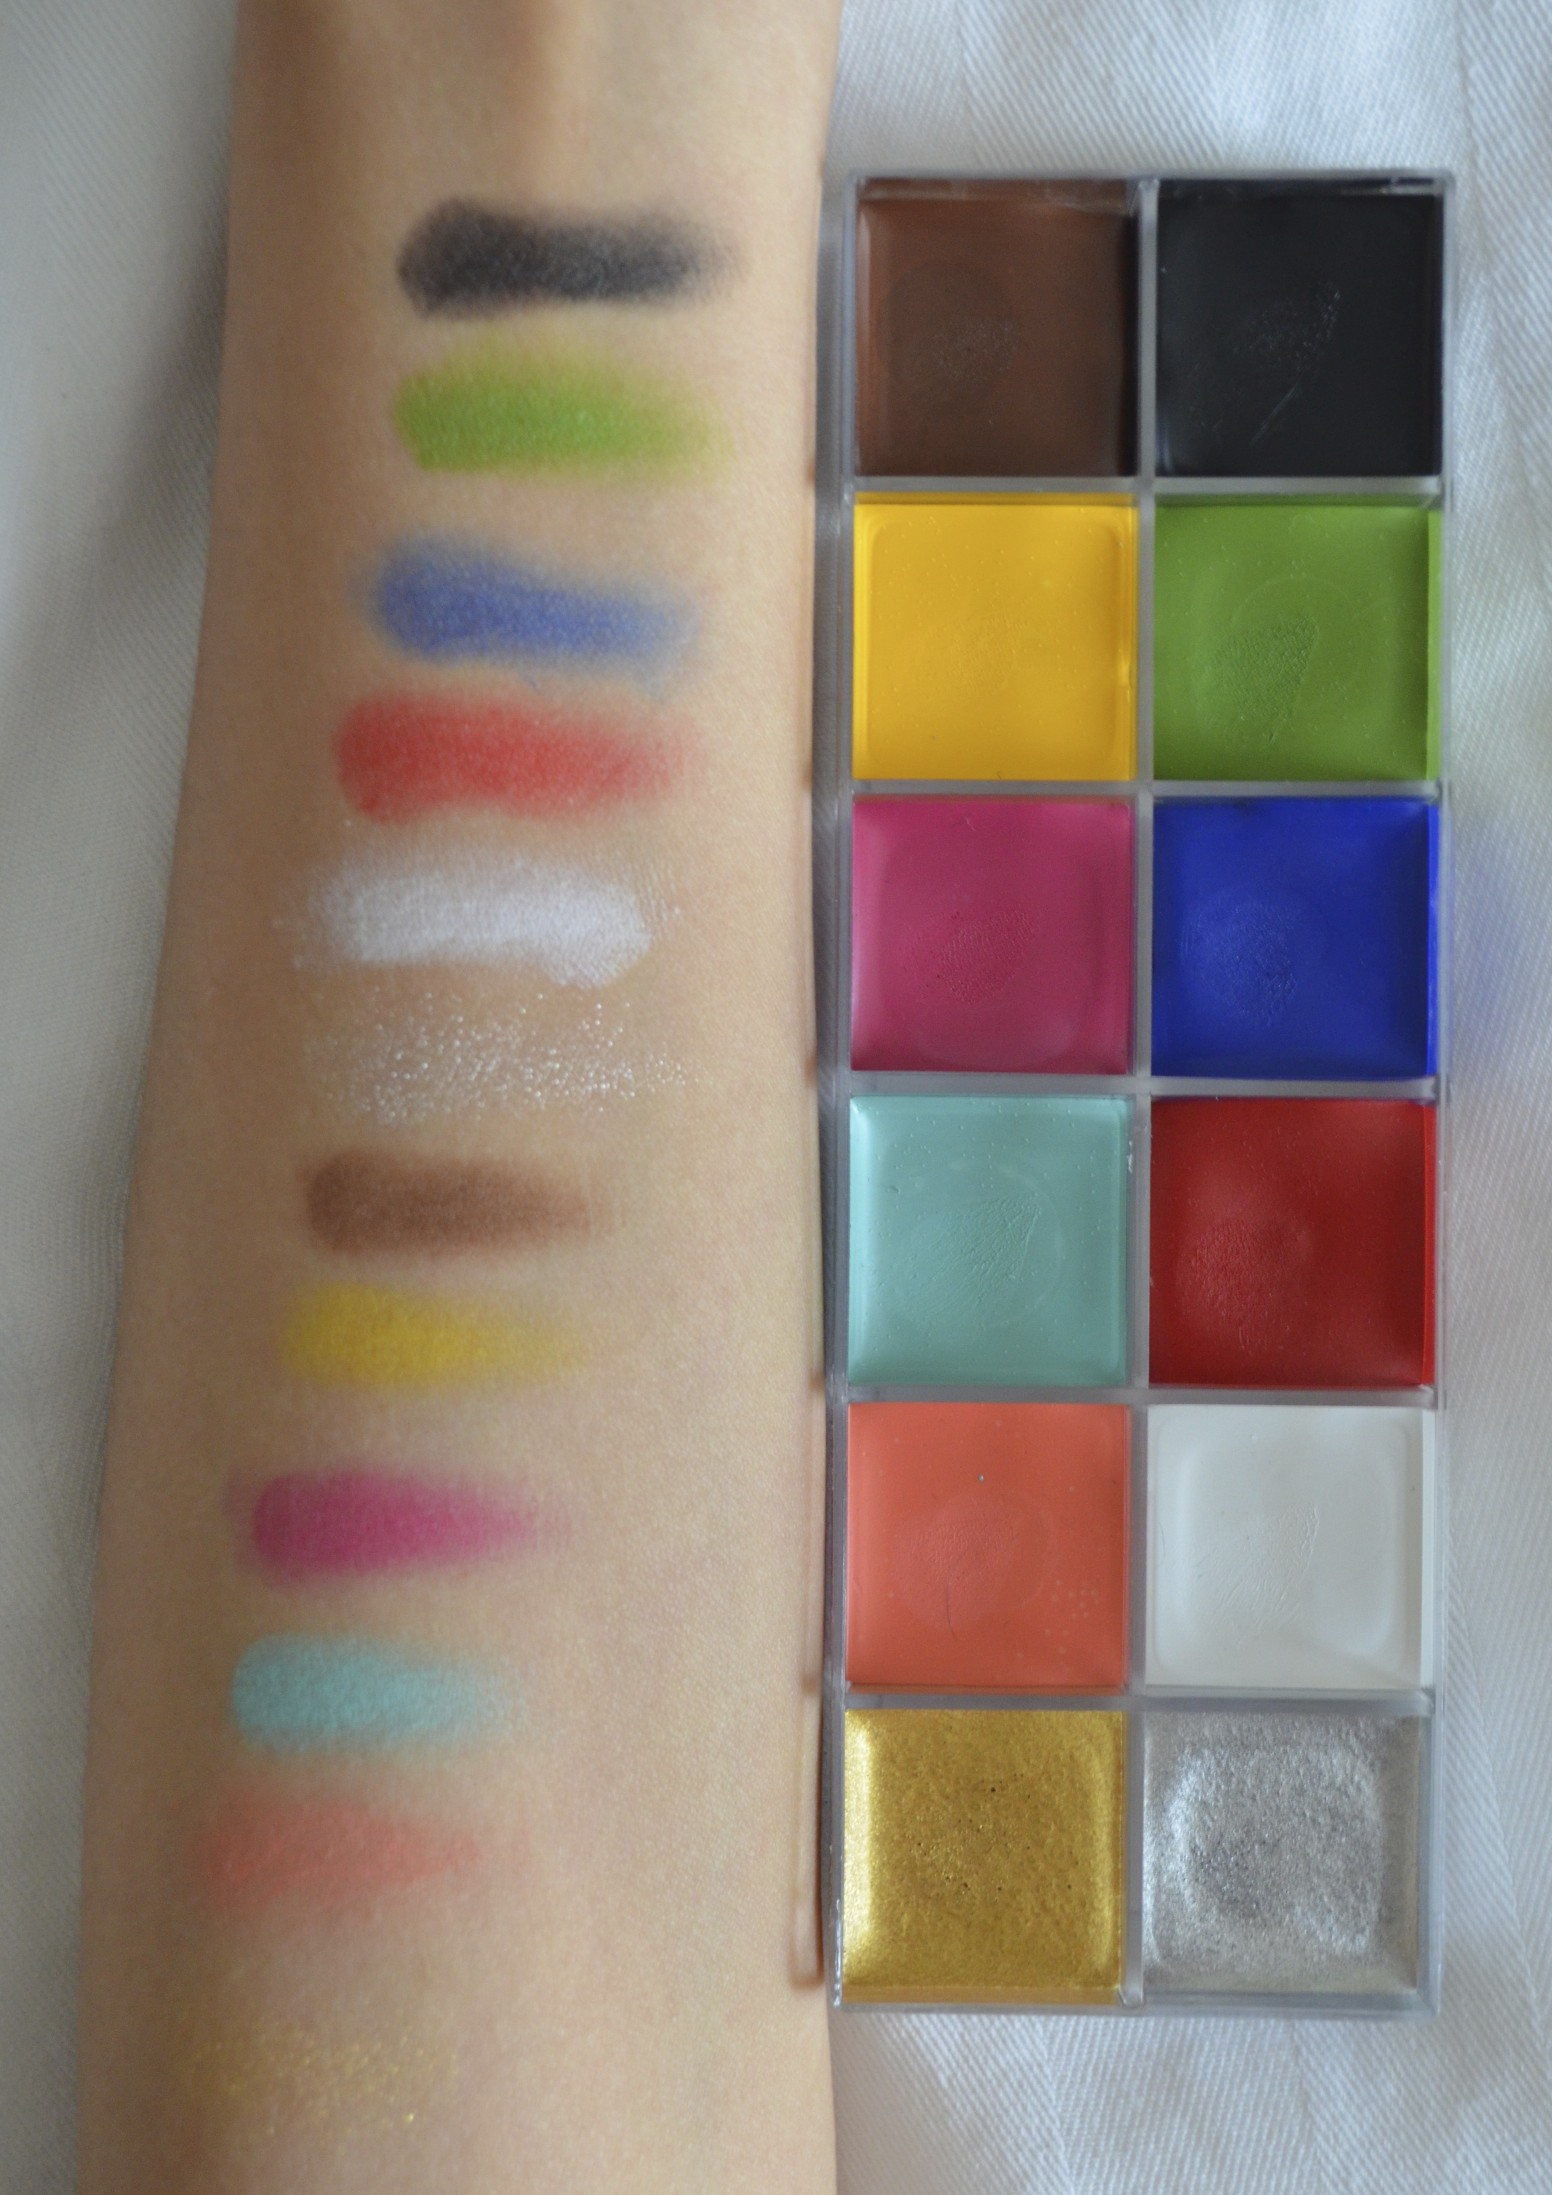 mufe flash color swatches